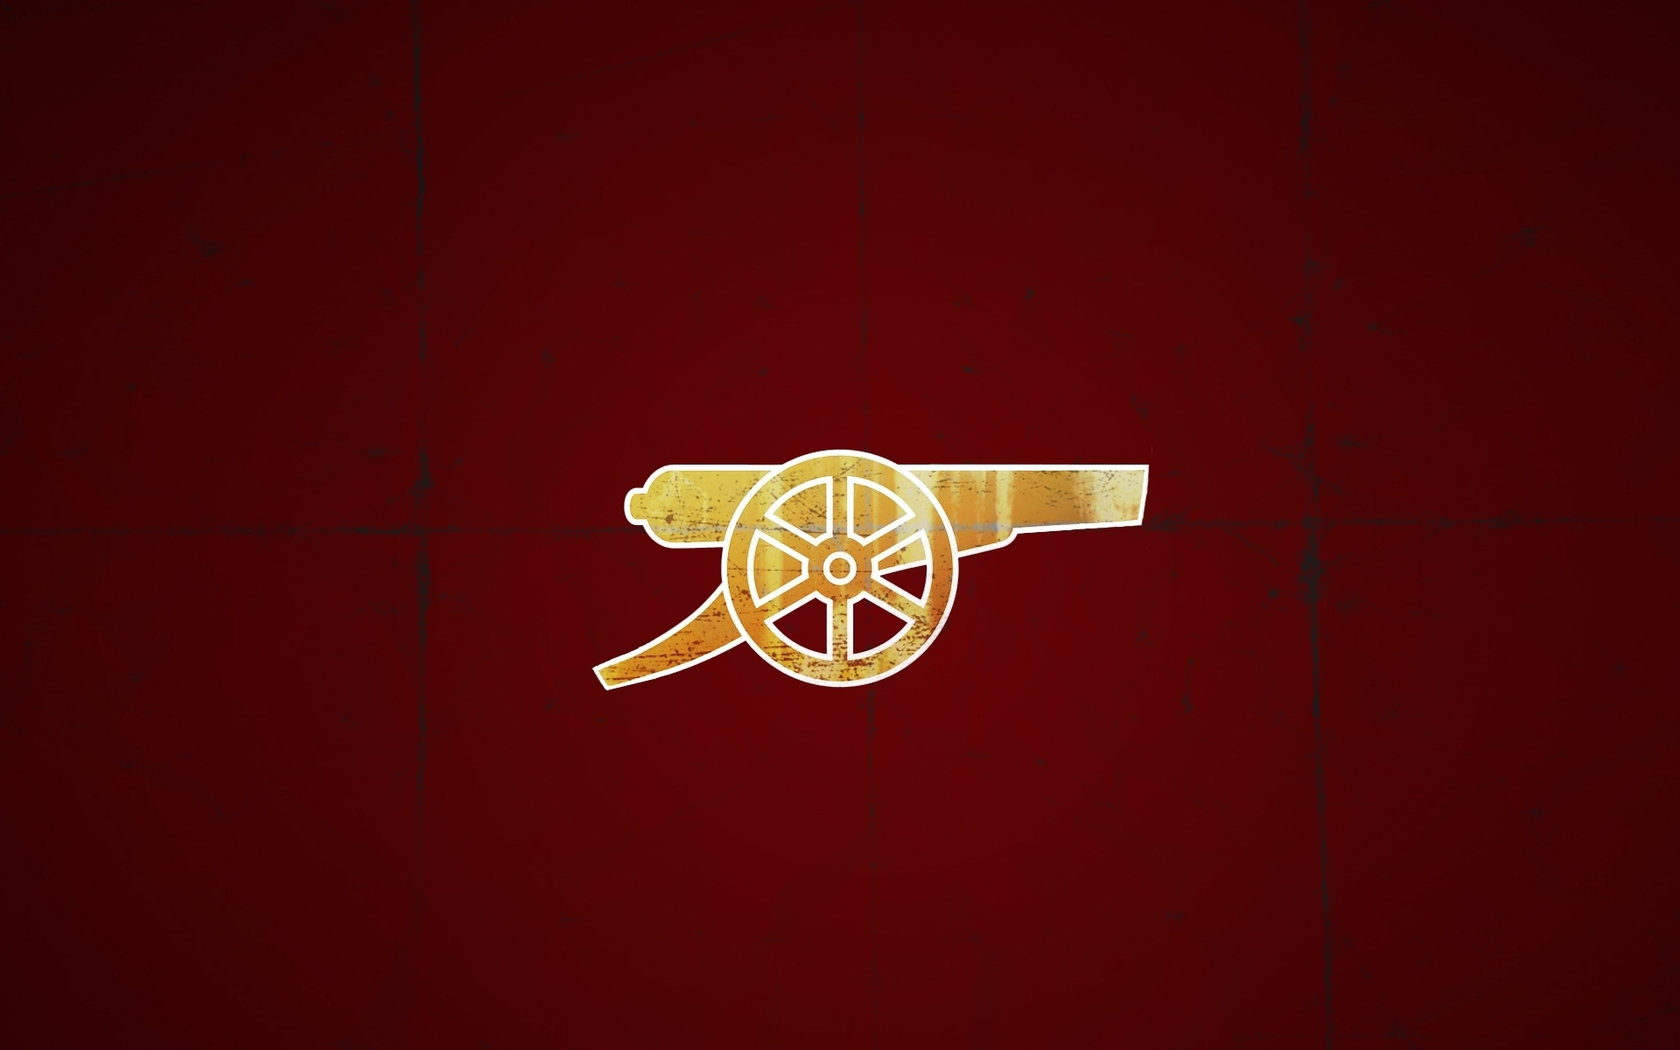 Download Arsenal Football Club logo wallpaper 1680x1050